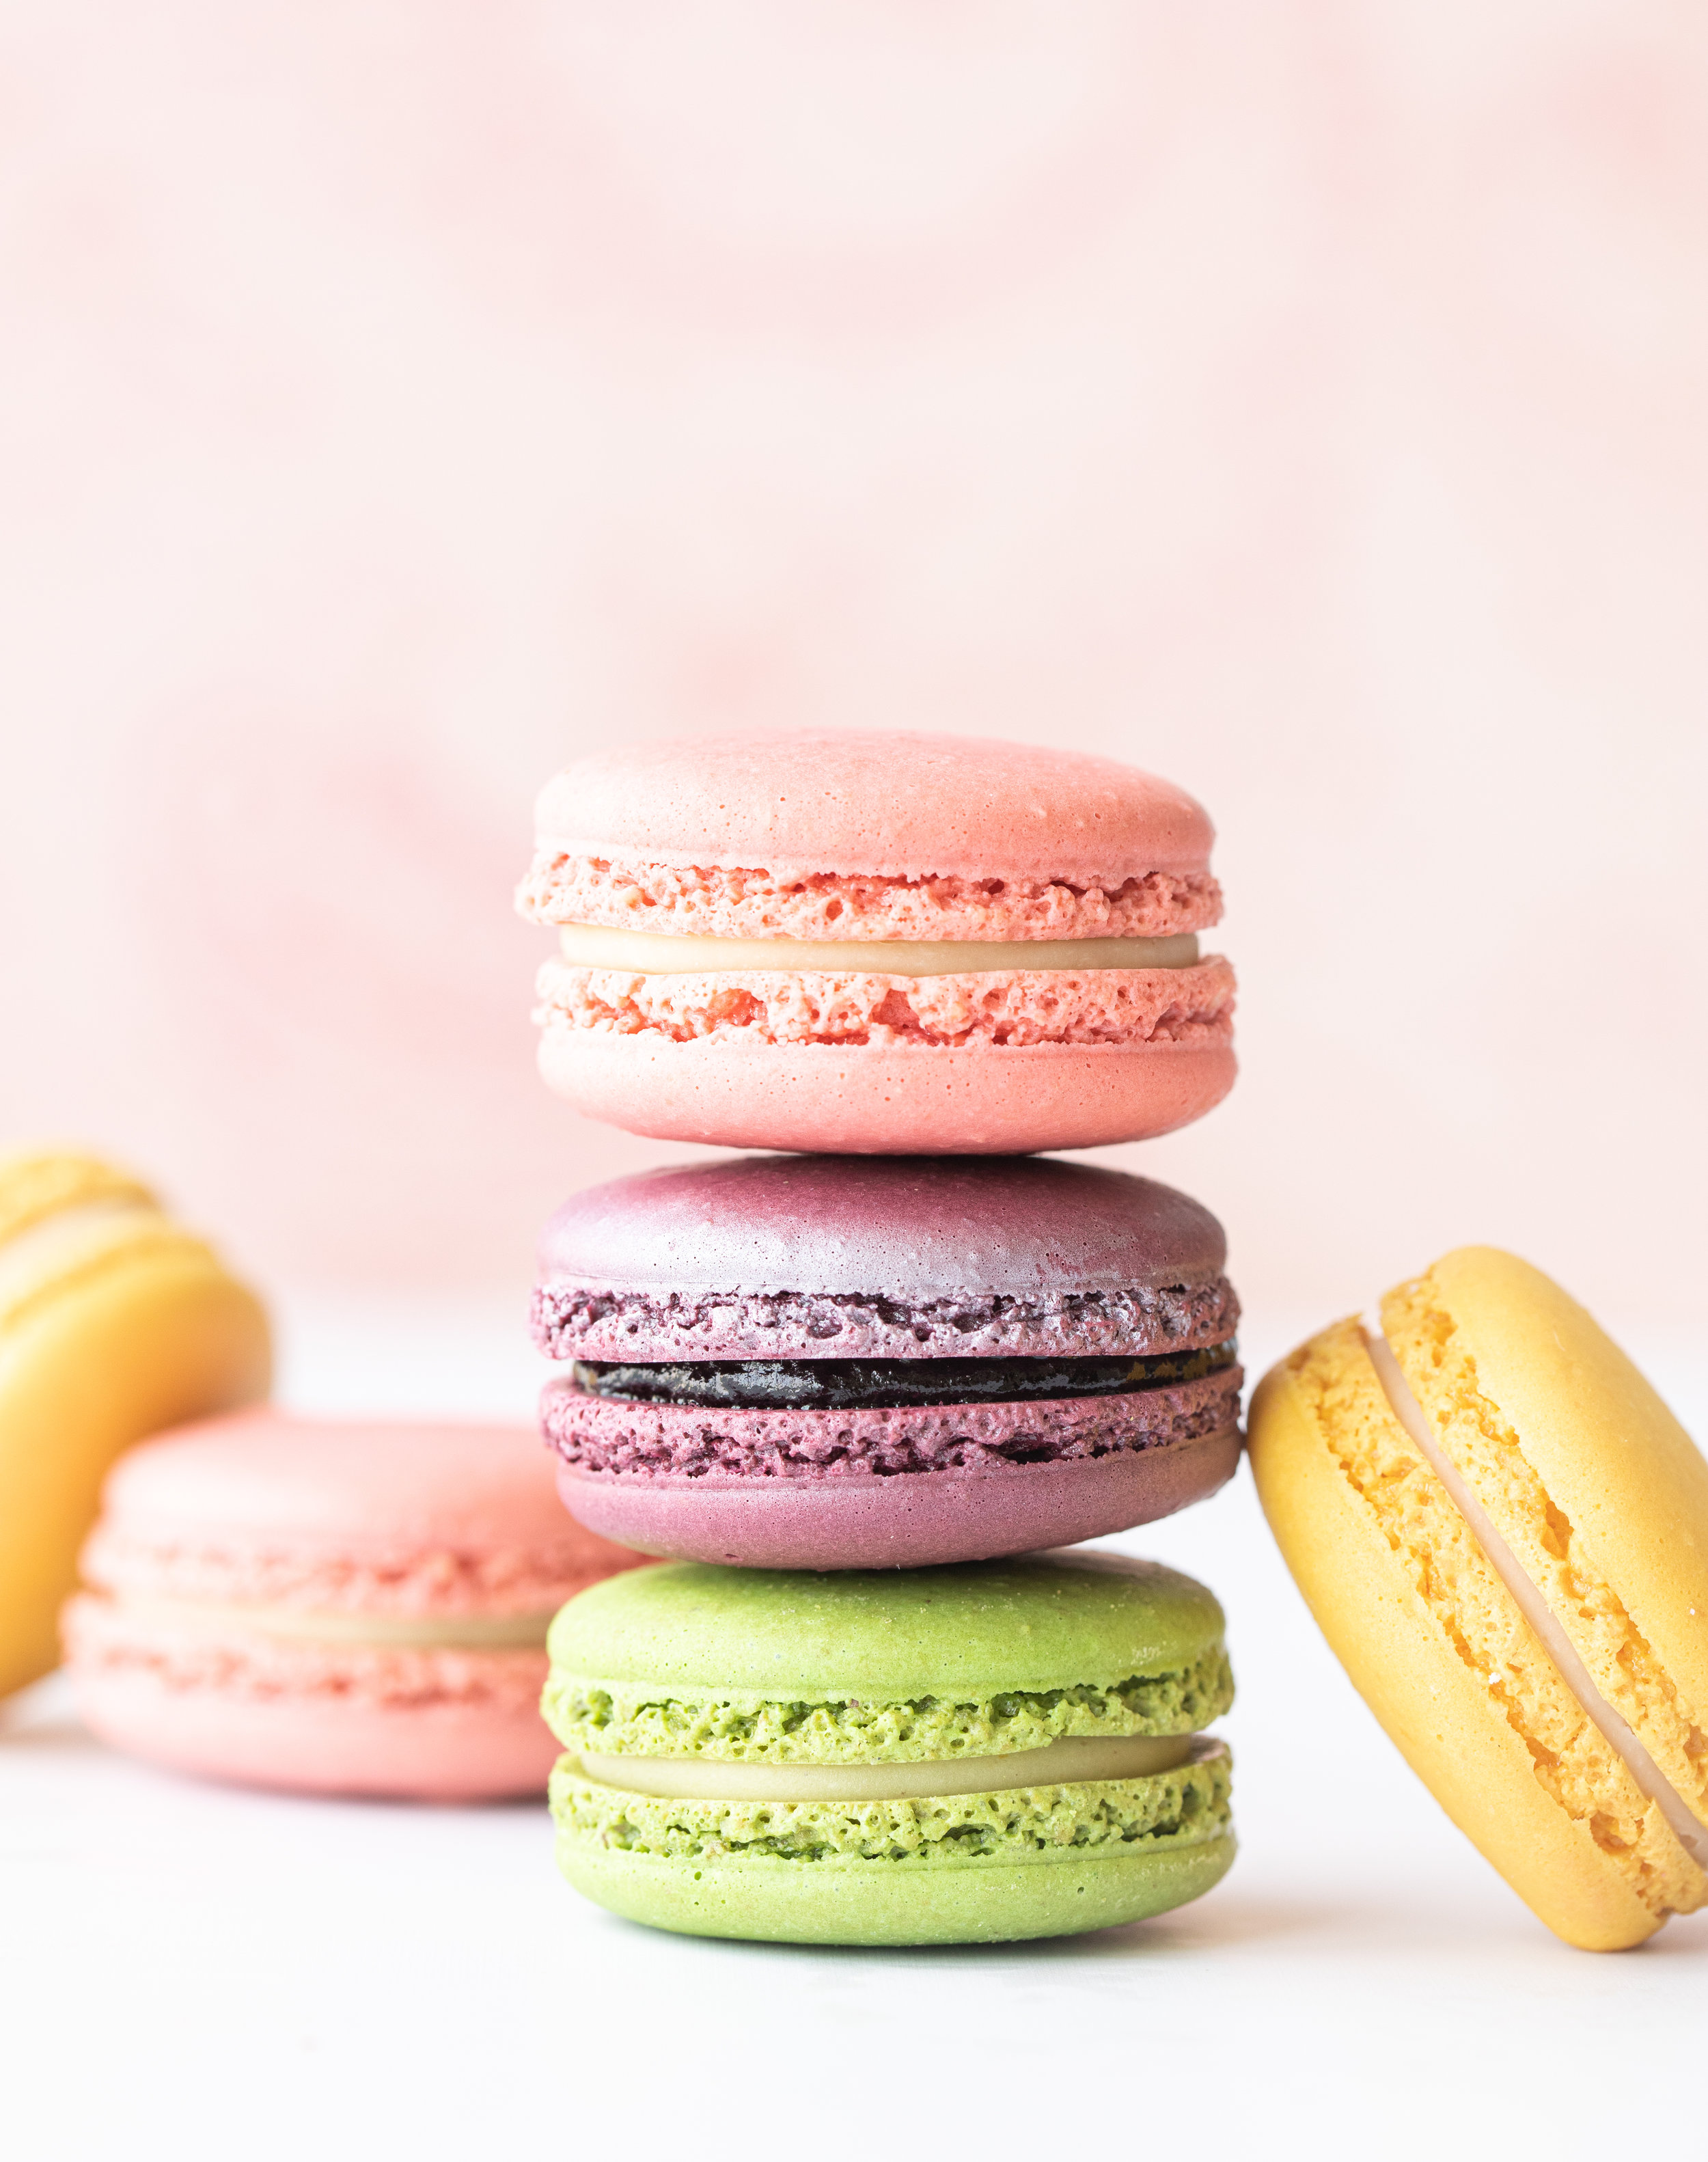 MACARON FLASH SALE! - Get your exclusive Gold Spoon Macaron Box here! For a limited time only, order deadline Wednesday Aug 28th, 2019 @ 11:59pm, while supplies last.All orders are to be picked up or delivered on Friday 8/30/2019. Offer only valid in the Twin Cities and surrounding metro areas. Limited quantities, so get them while you can!